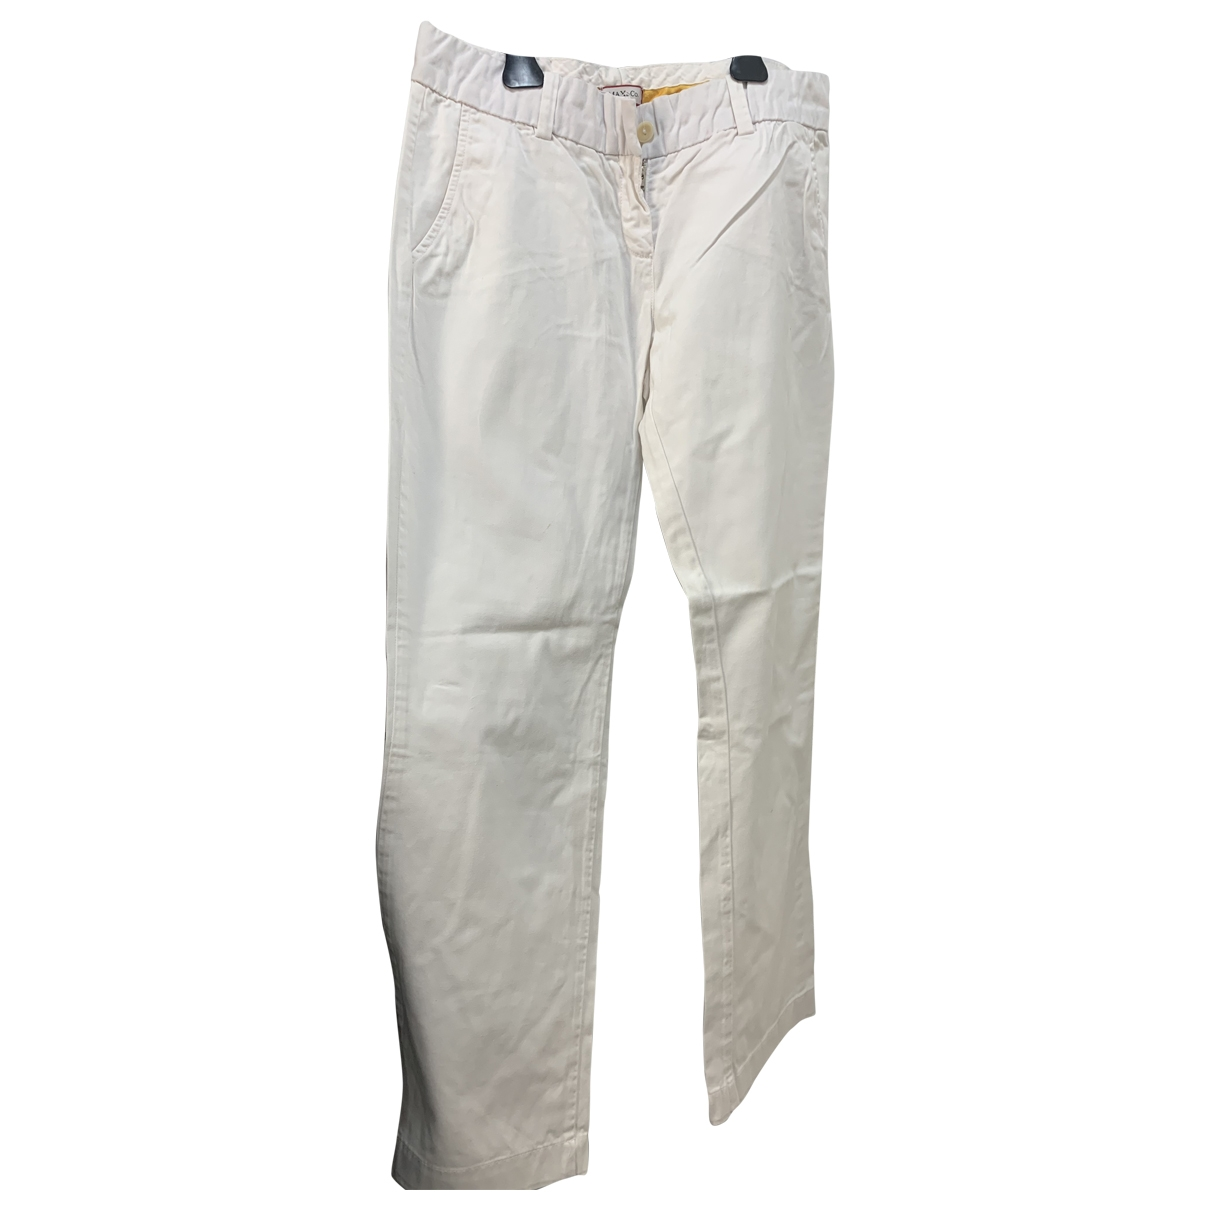 Max & Co \N White Cotton Trousers for Women M International